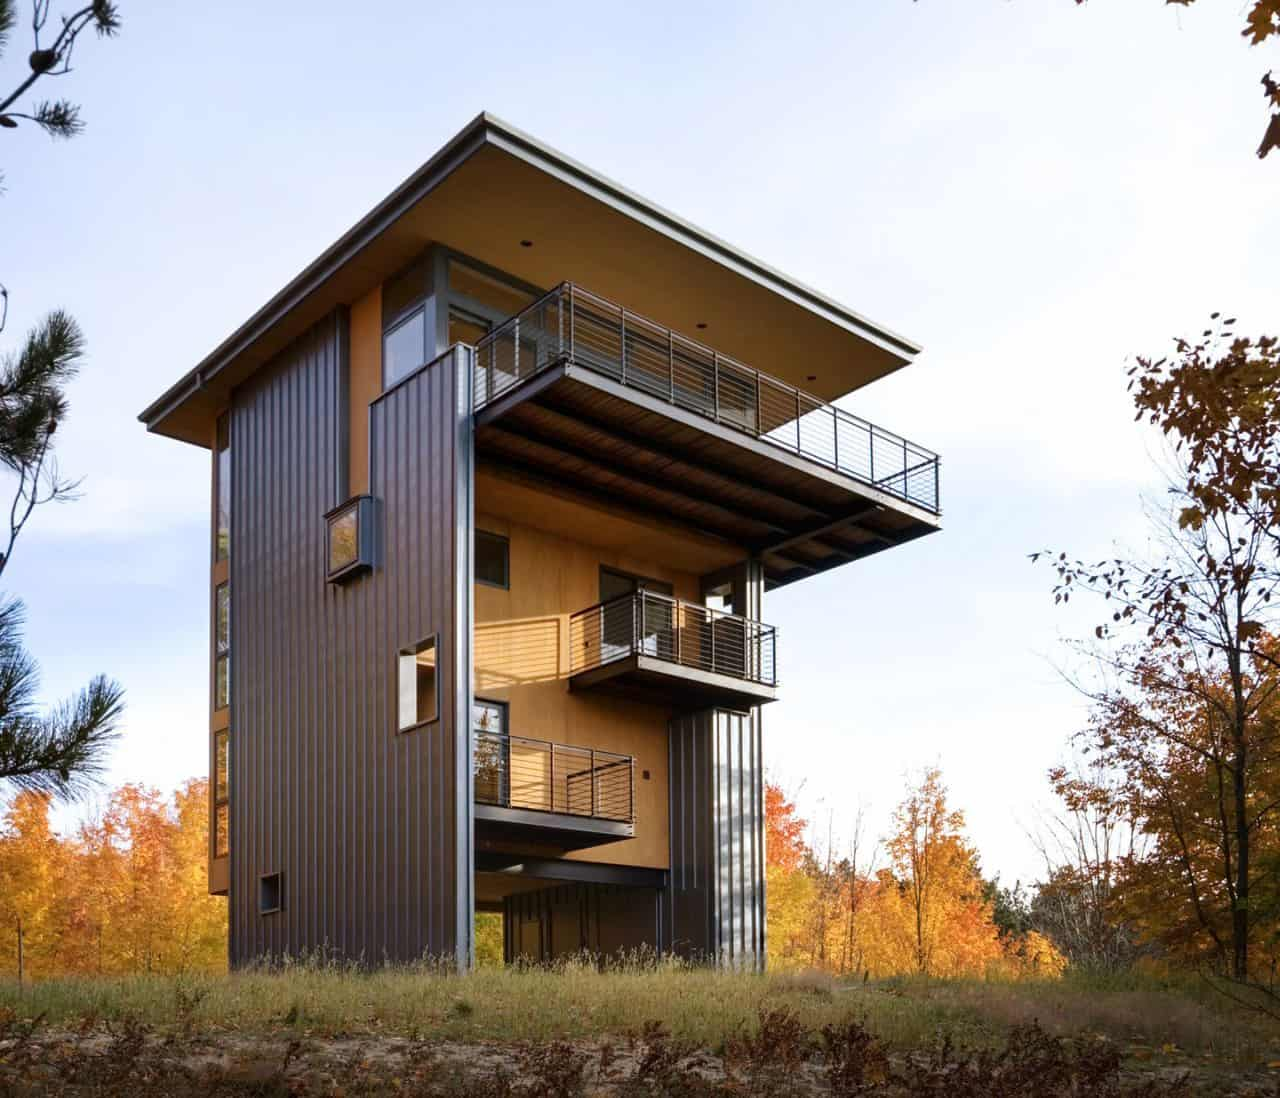 Lakefront Cottage Design Idea Observation Loft: 4-Storey Tall House Reaches Above The Forest To See The Lake